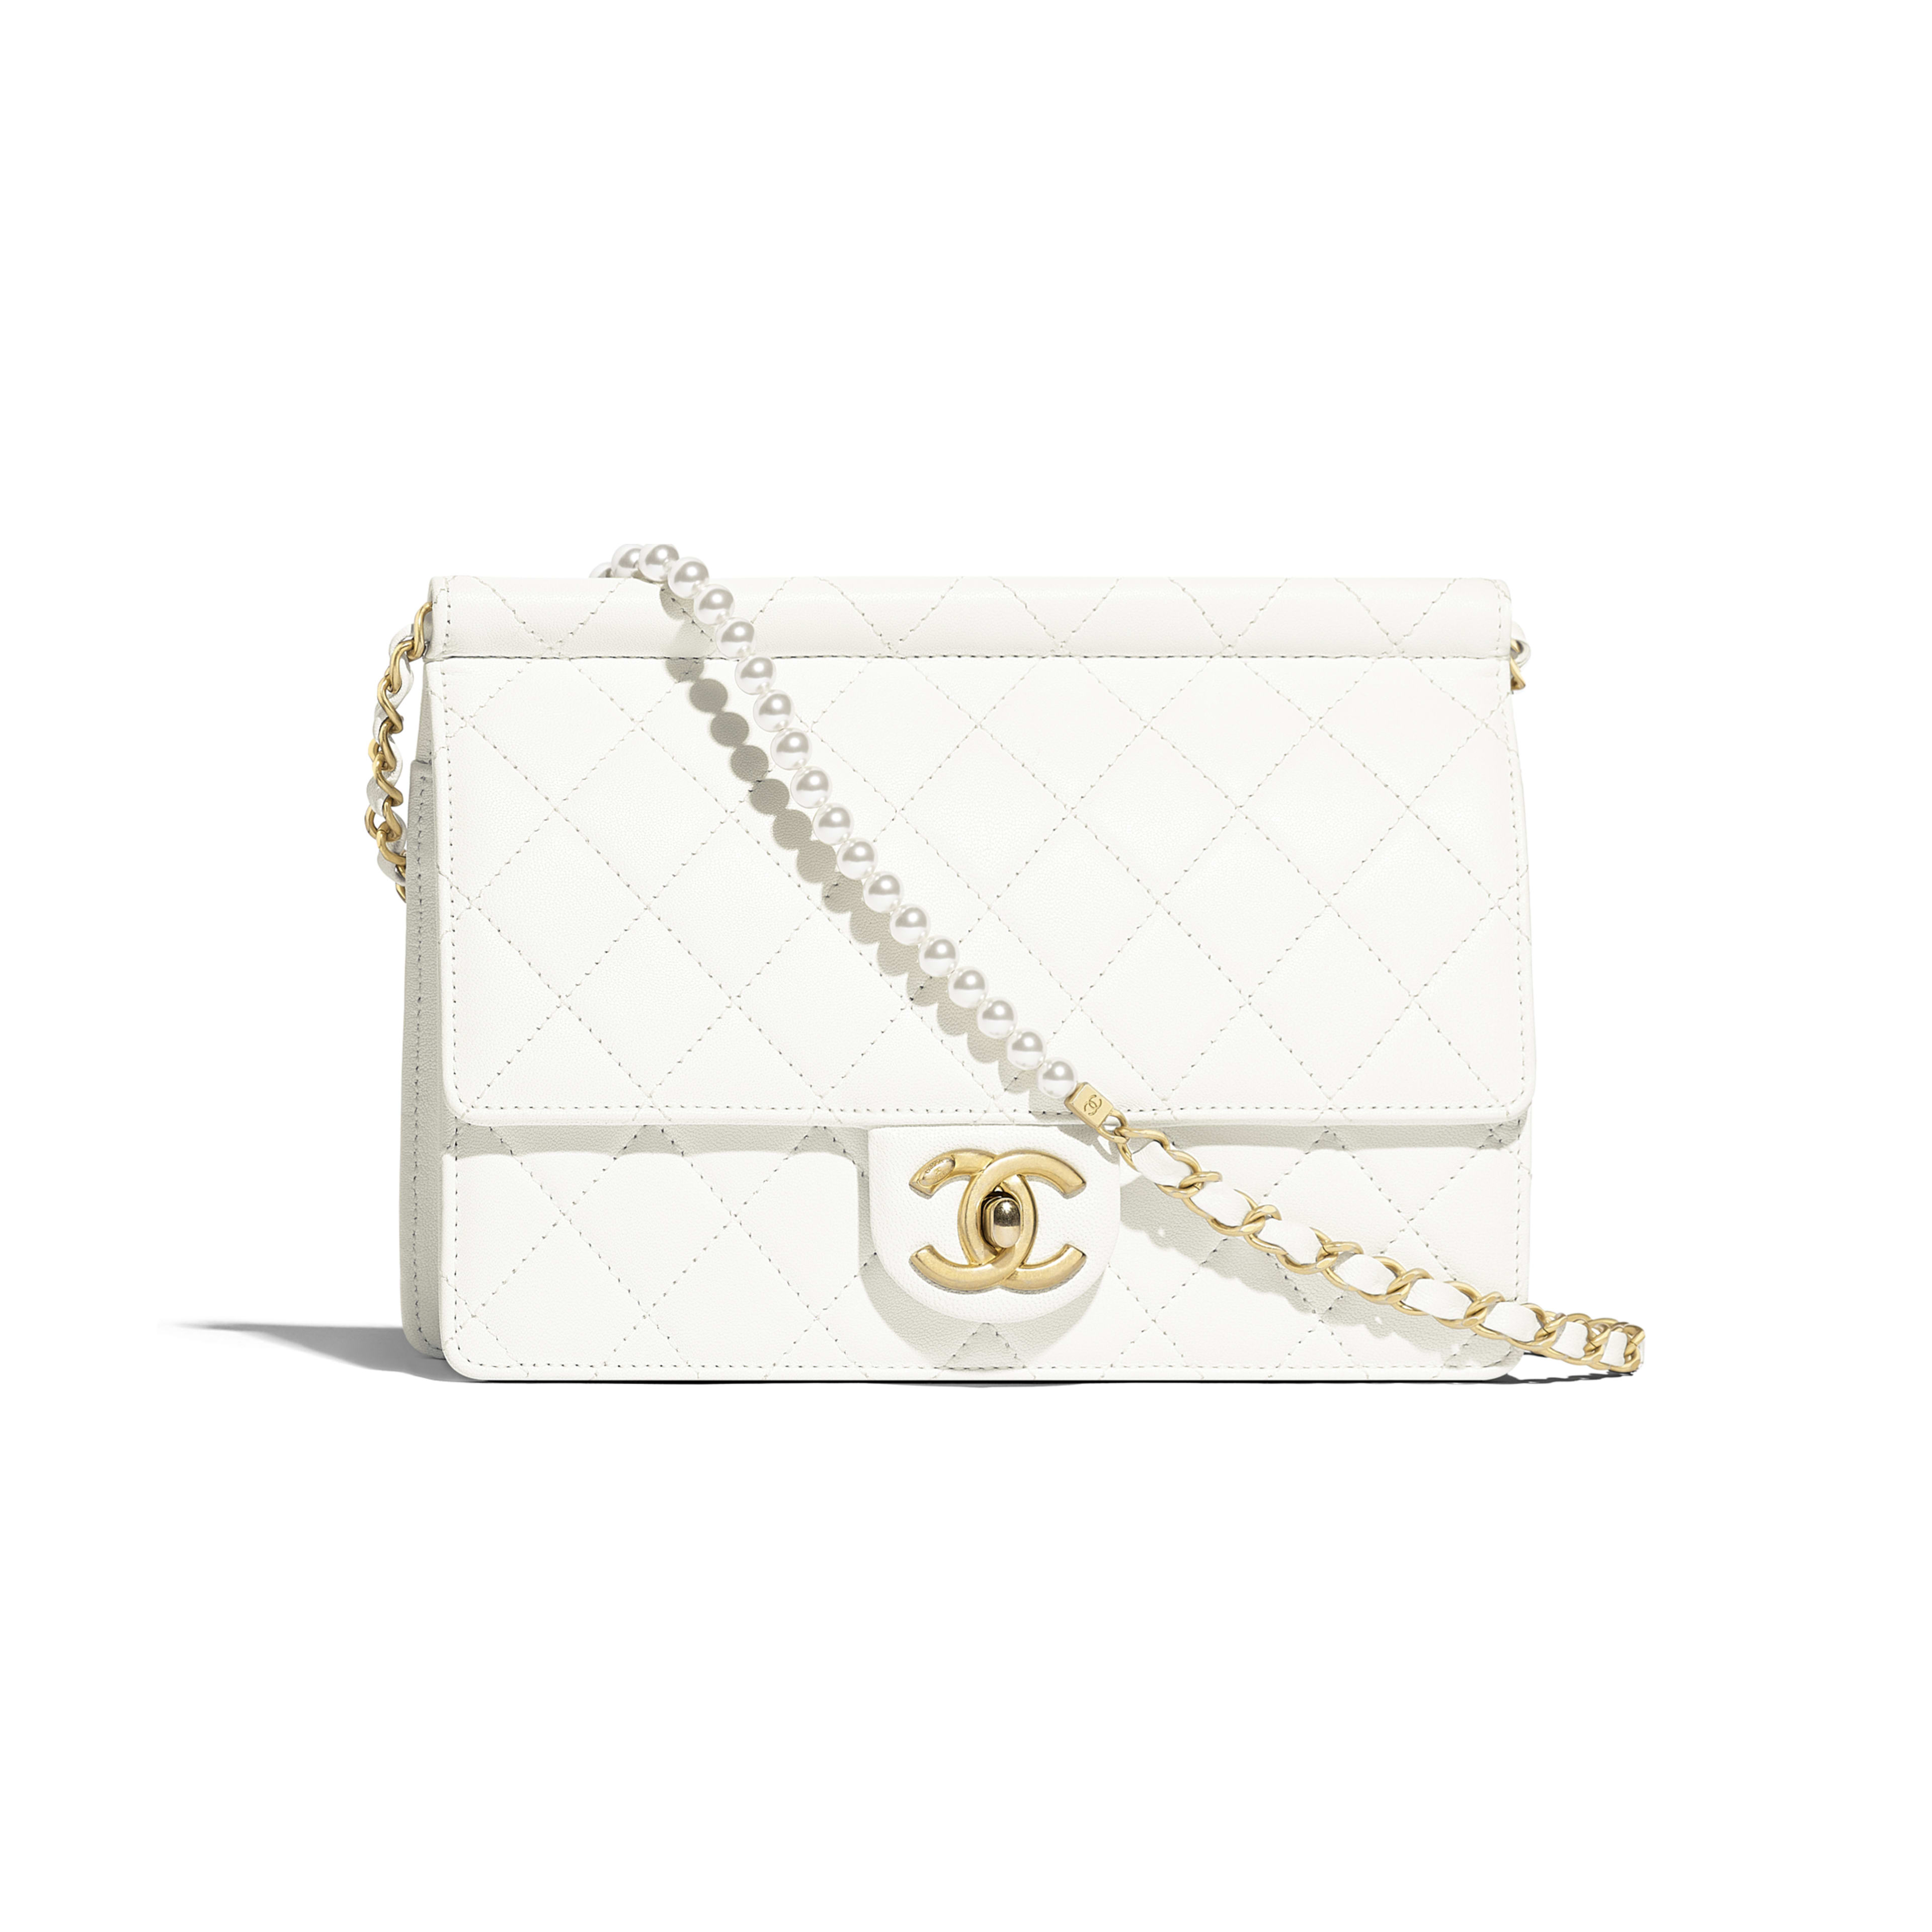 Flap Bag - White - Lambskin, Imitation Pearls & Gold-Tone Metal - Default view - see full sized version